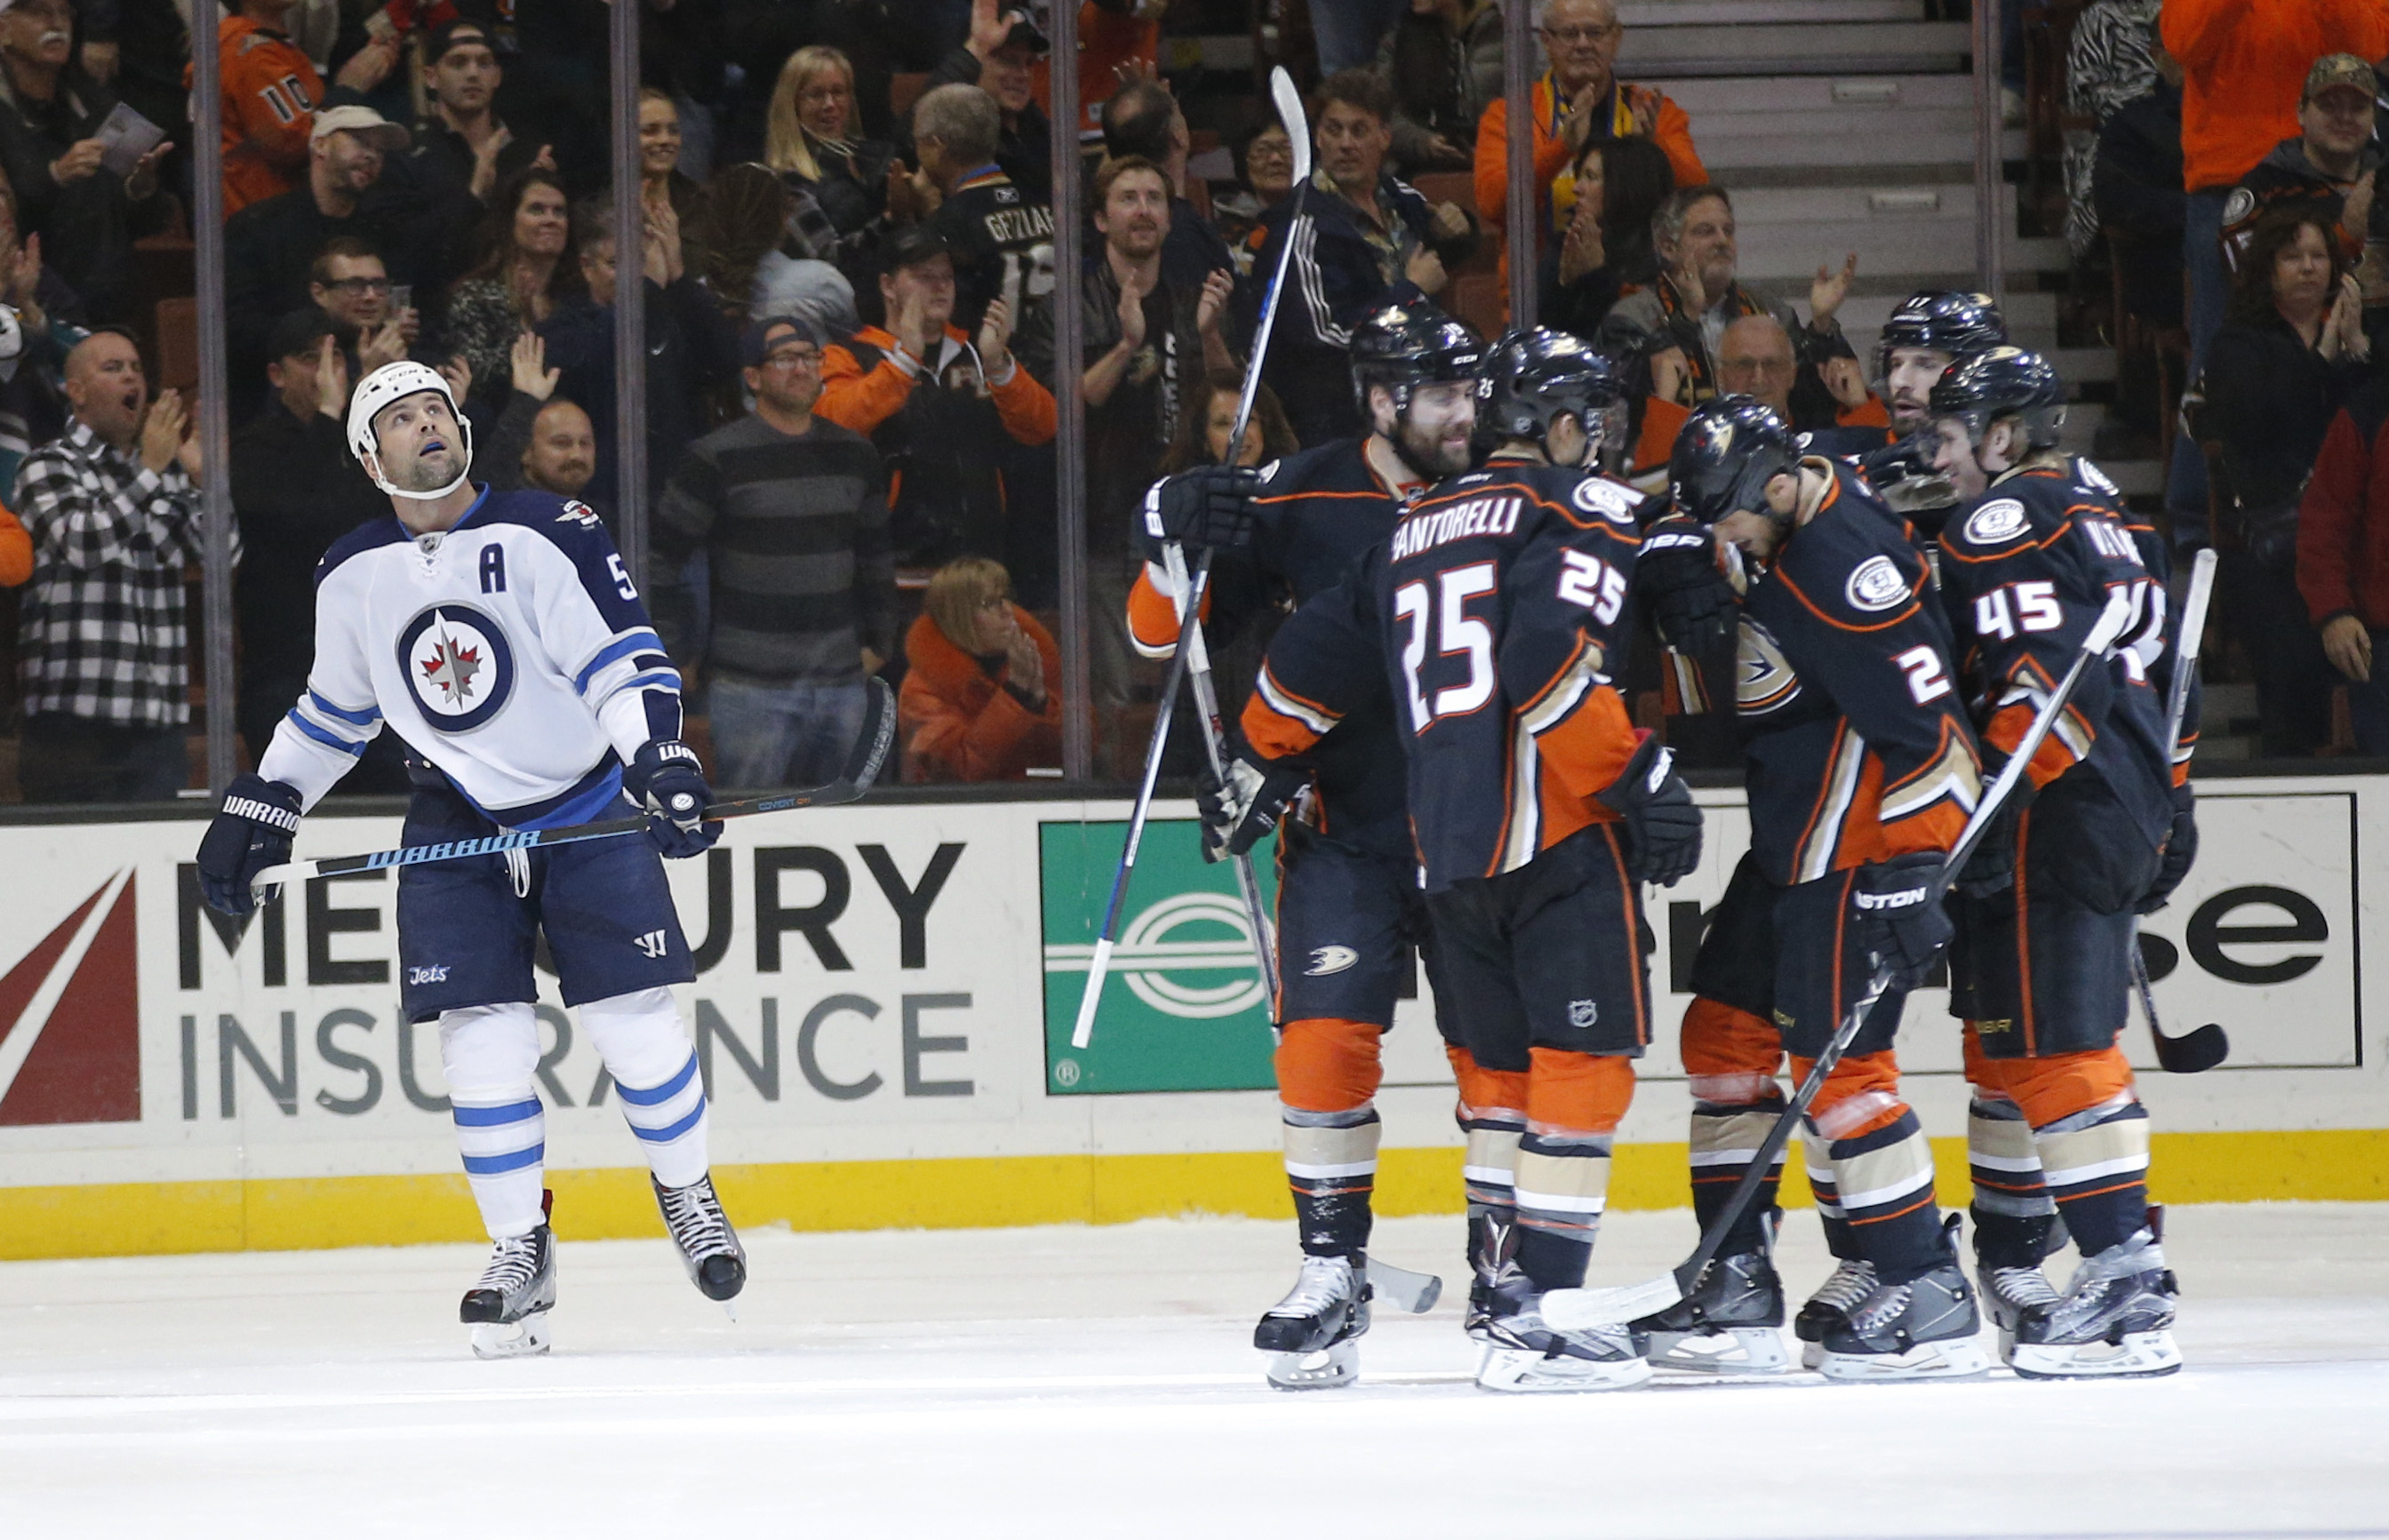 Winnipeg Jets' Mark Stuart, left, looks at the scoreboard as the Anaheim Ducks players celebrate a goal by Kevin Bieksa during the first period of an NHL hockey game, Sunday, Jan. 3, 2016, in Anaheim, Calif. (AP Photo/Jae C. Hong)